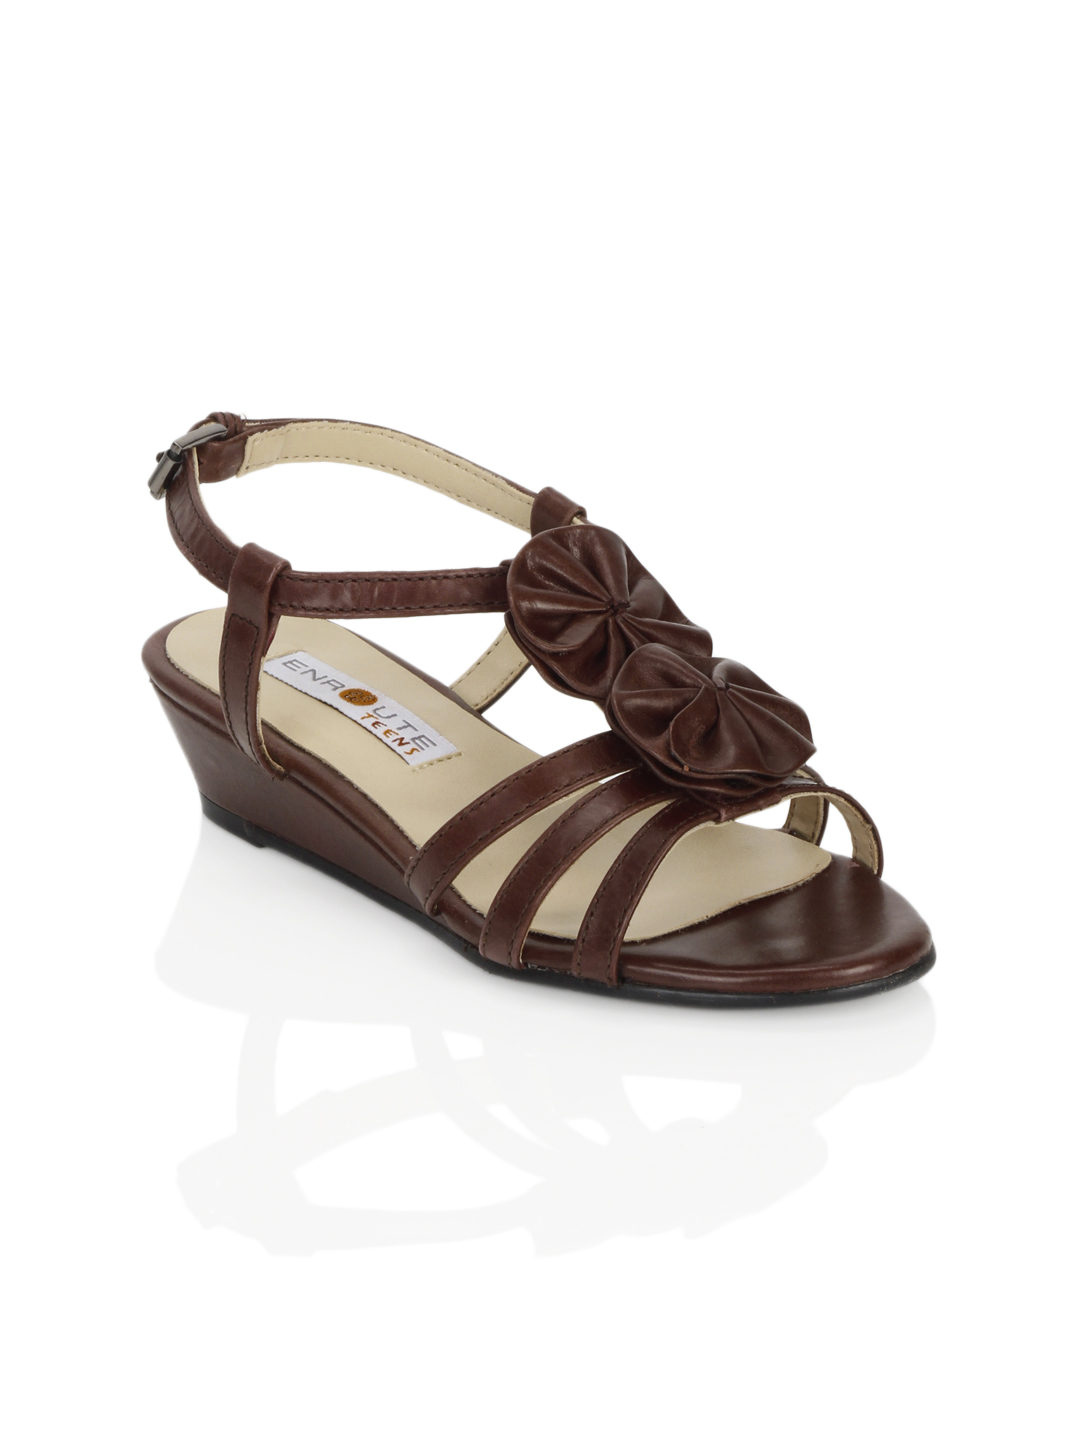 Enroute Teens Brown Sandals